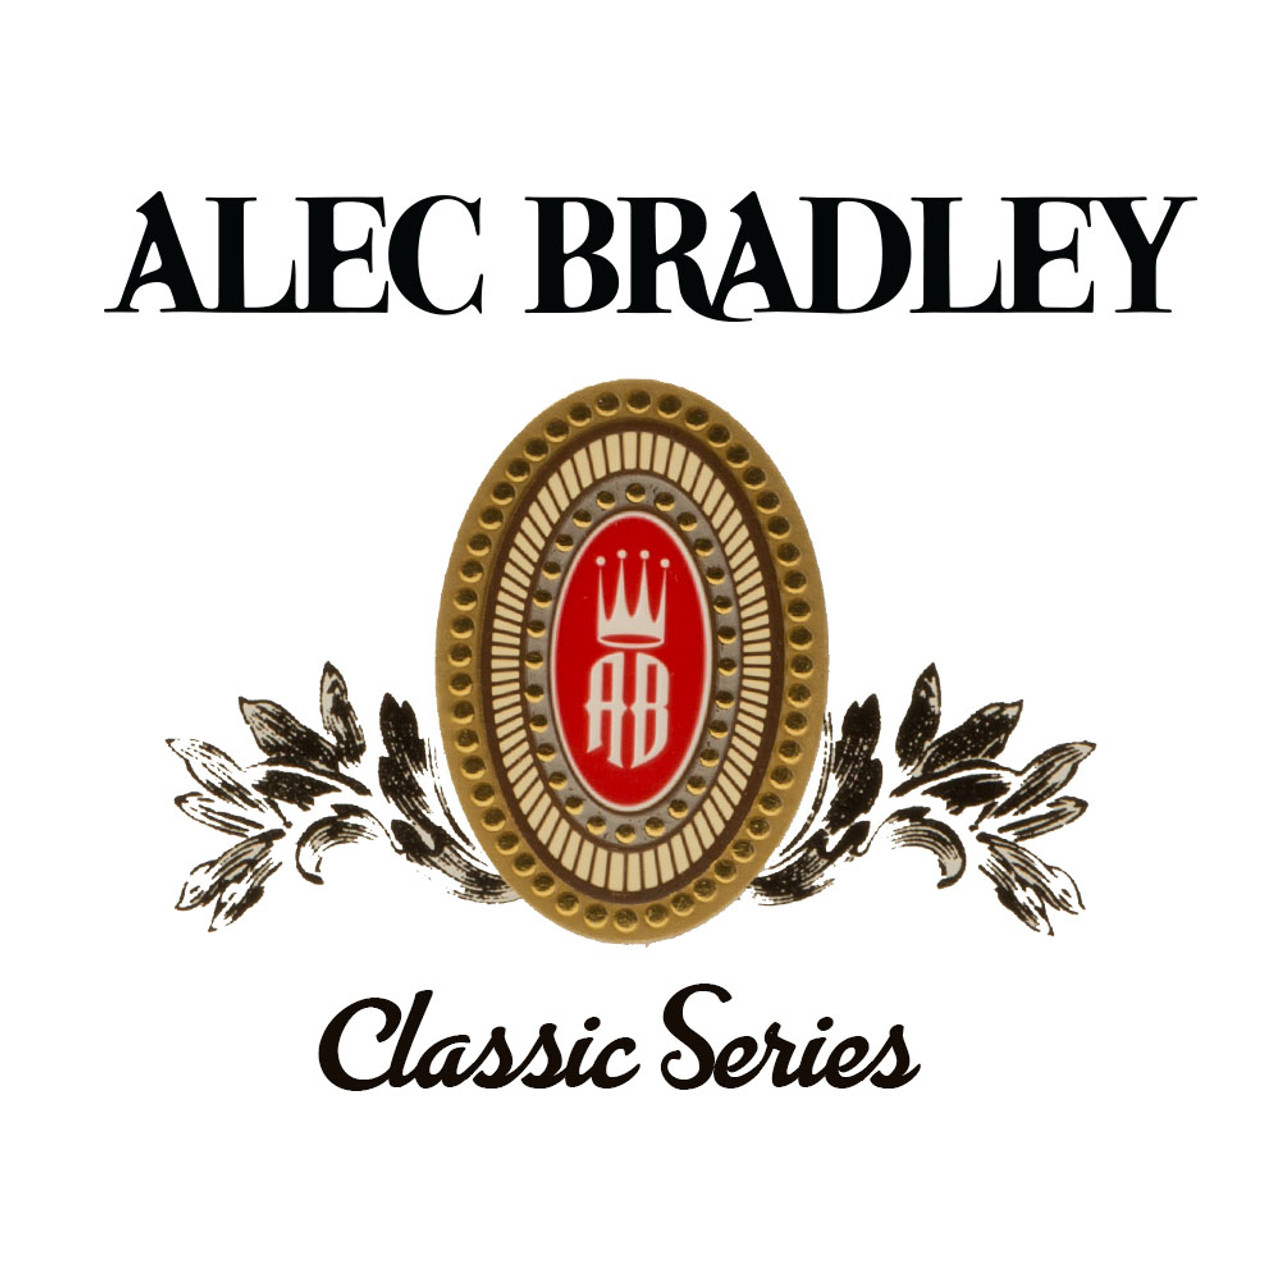 Alec Bradley Classic Series Connecticut Gordo Cigars - 6 x 60 (Box of 20)